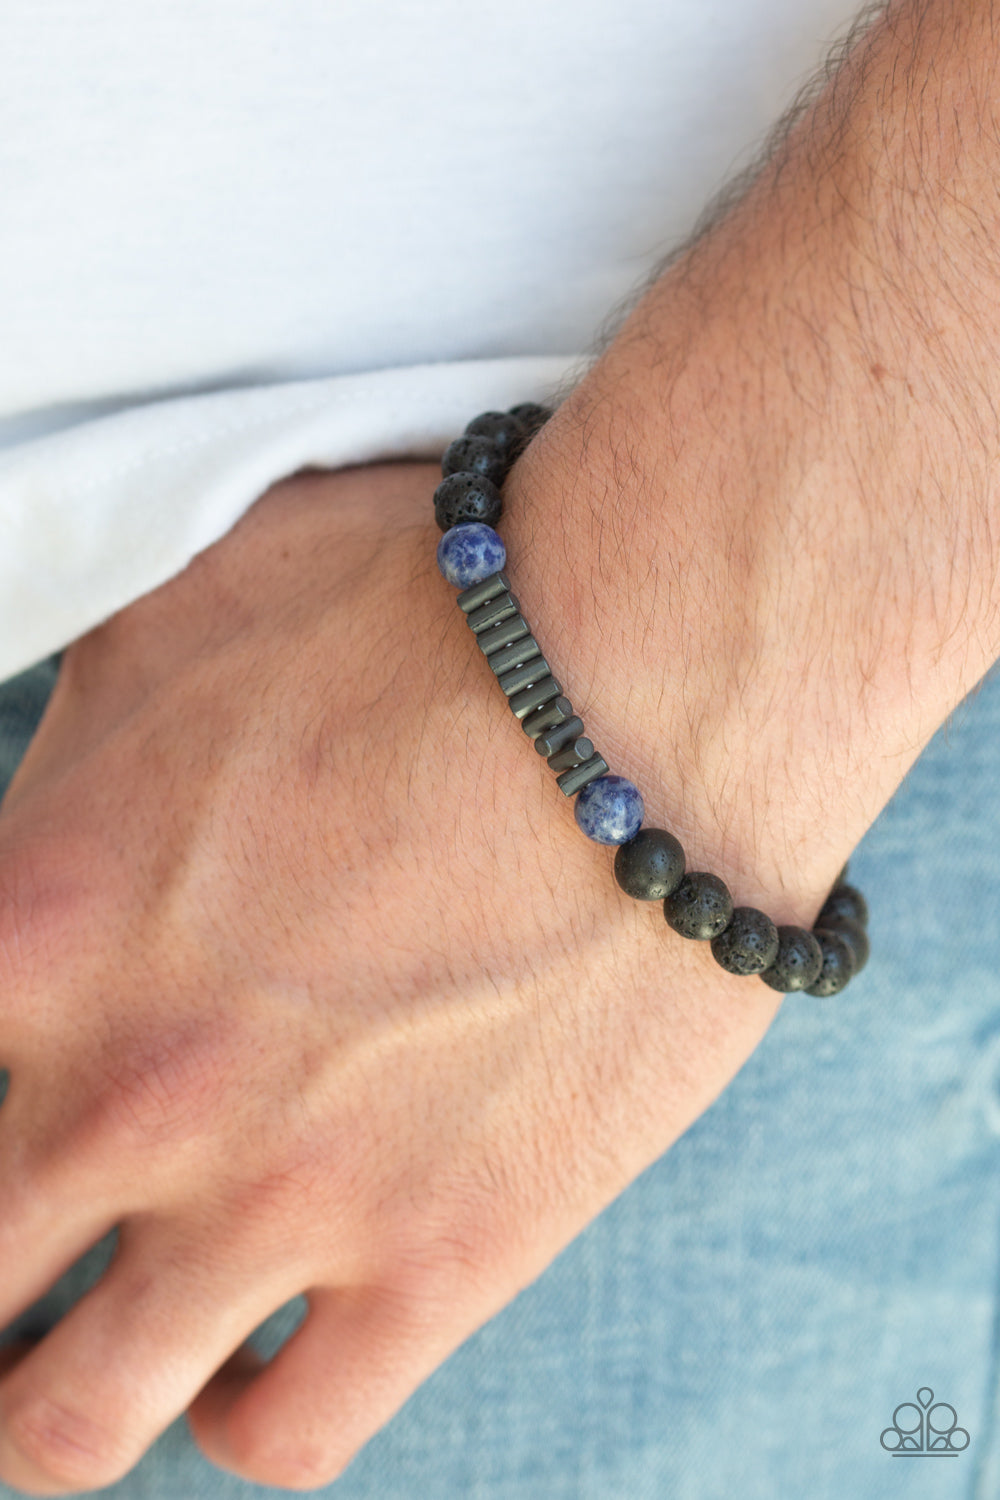 Paparazzi Accessories - Courage - Blue Stone Black Lava Beads Bracelet. Bling By Titia